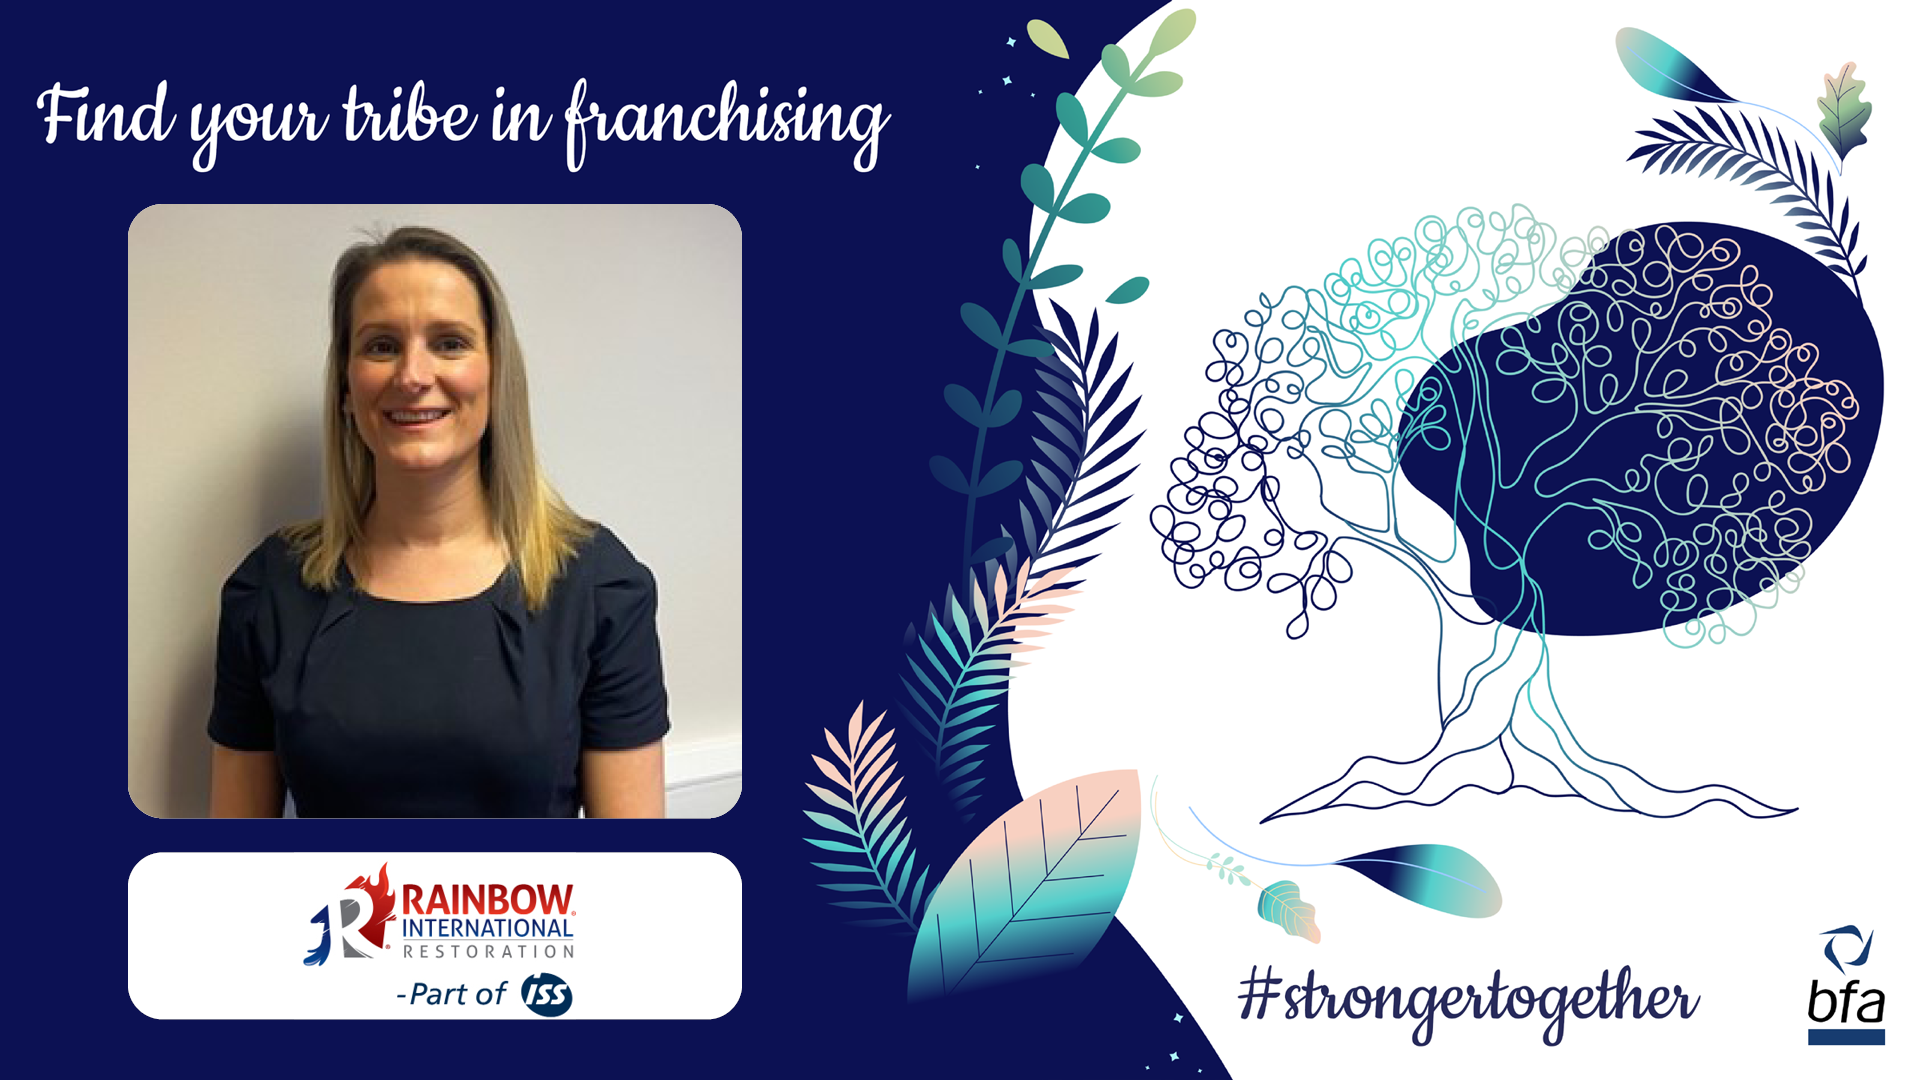 Featuring Vicky Elder, Franchise Business Owner, Rainbow International Liverpool